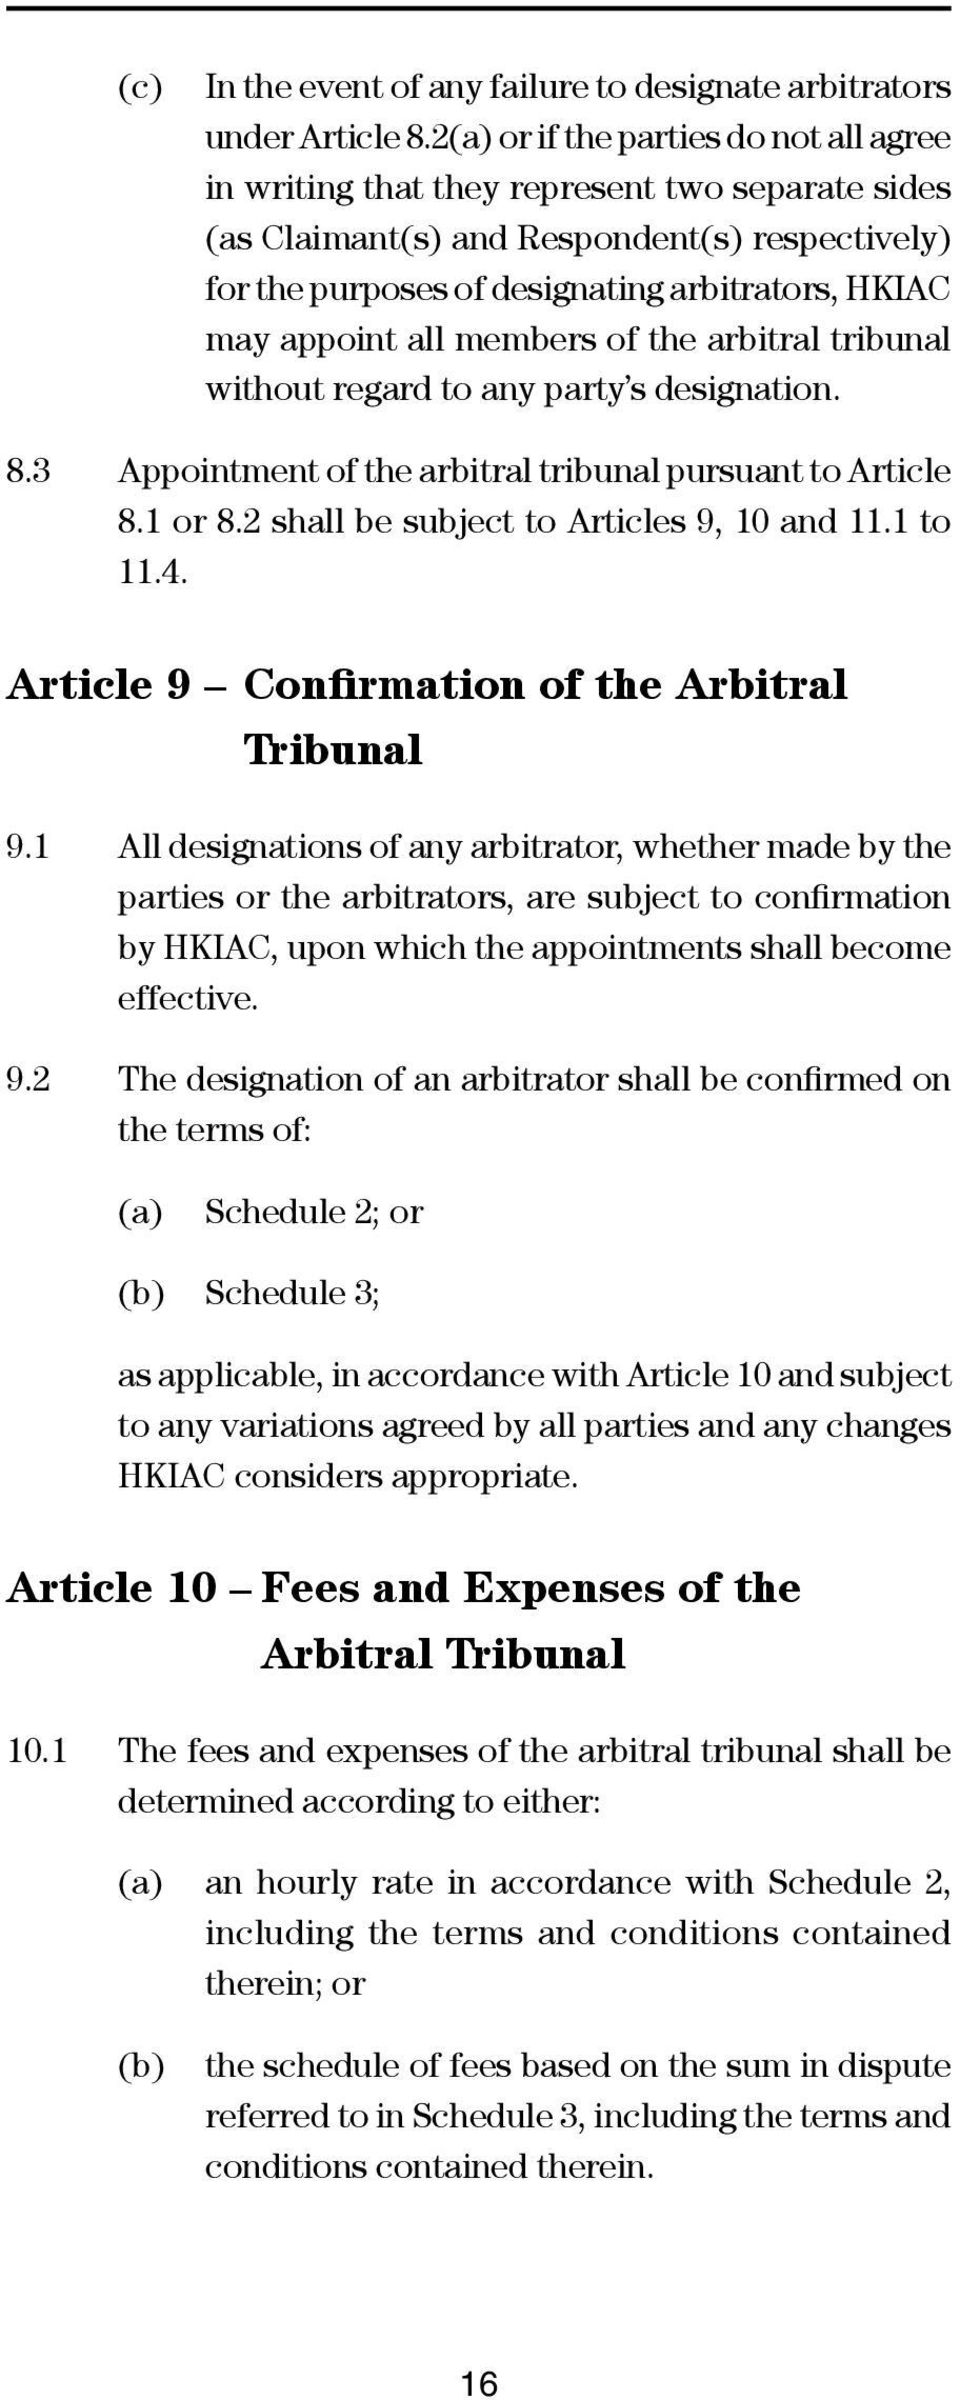 appoint all members of the arbitral tribunal without regard to any party s designation. 8.3 Appointment of the arbitral tribunal pursuant to Article 8.1 or 8.